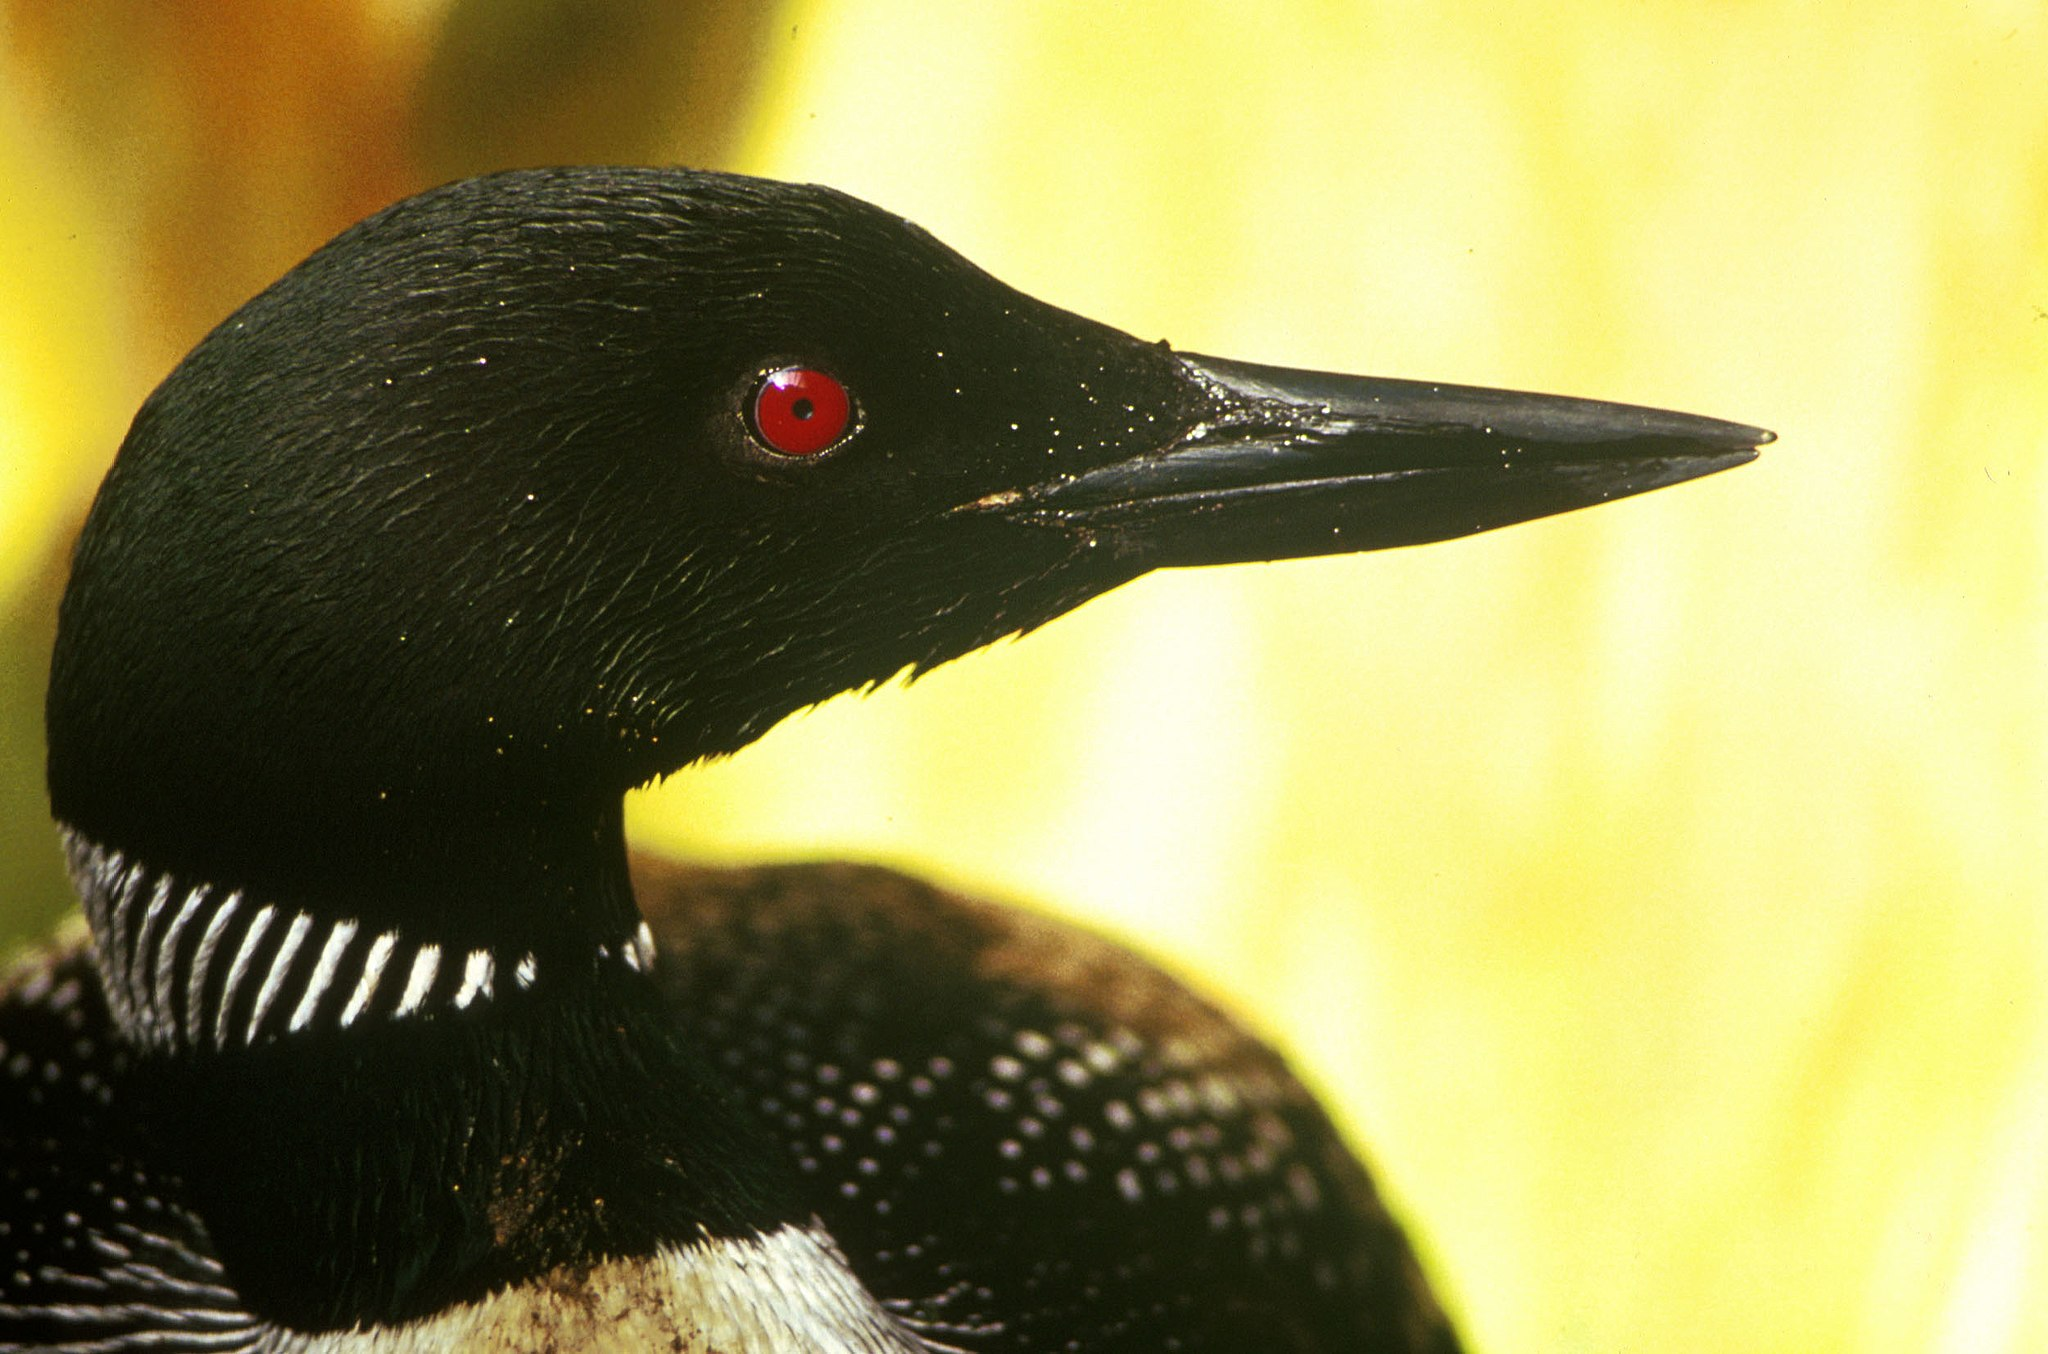 The head of a Common Loon (''gavia immer'').